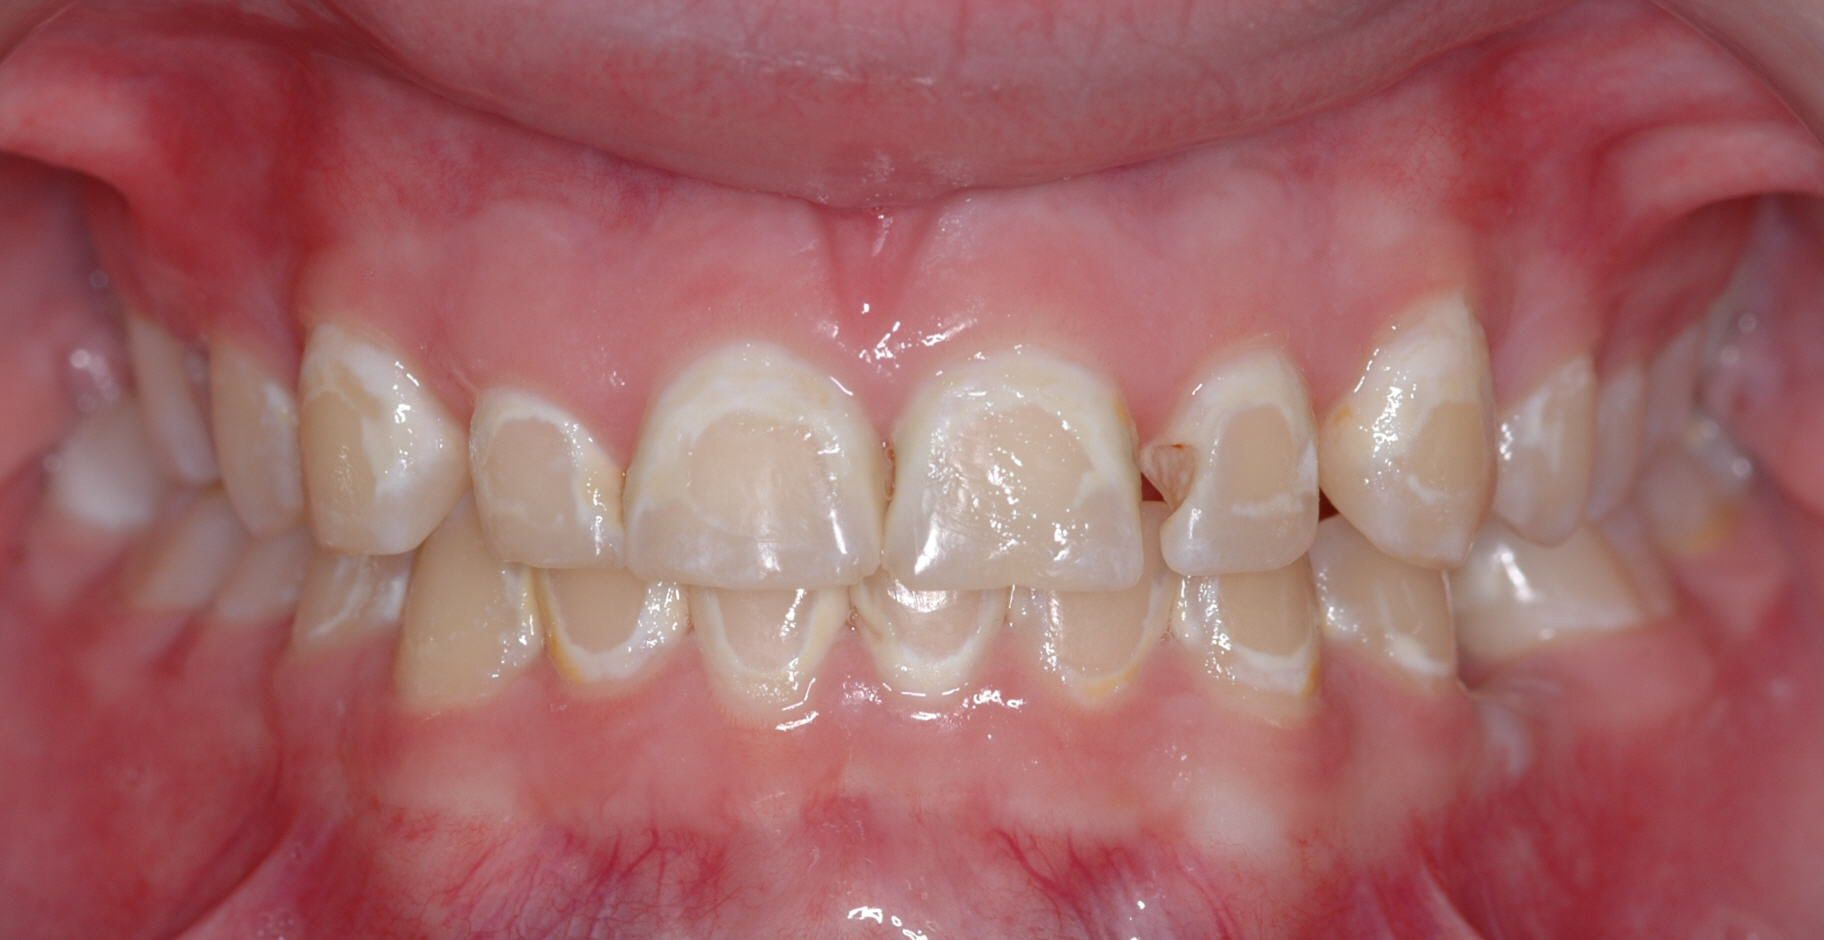 The hyperwhite areas are examples of tooth